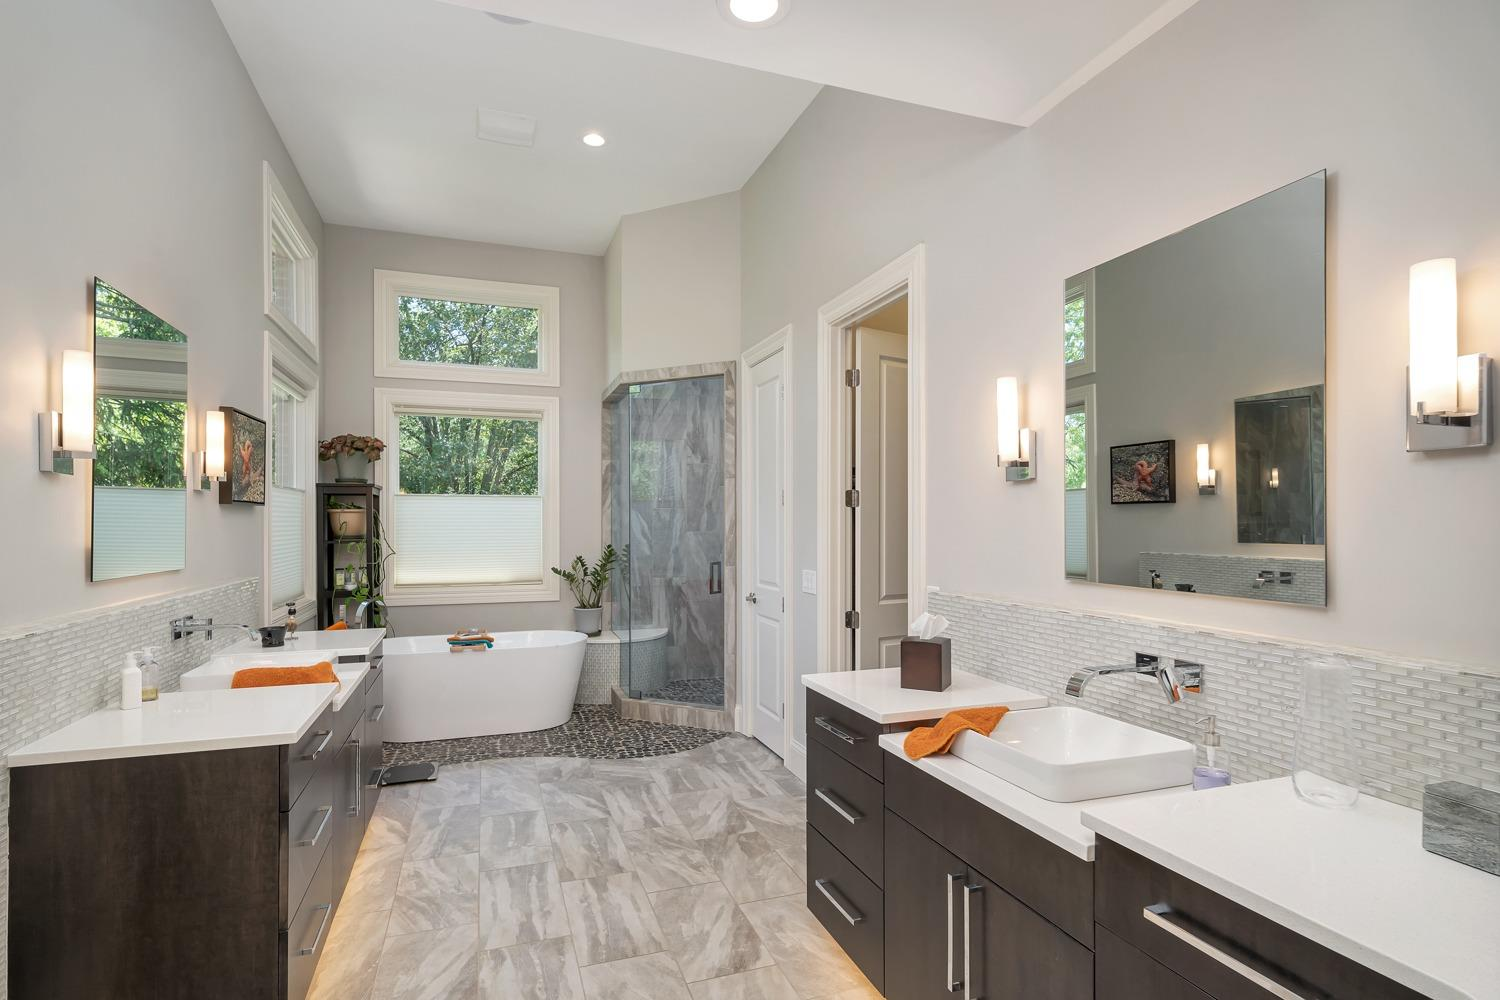 Master bathroom is large and features heated floors, Graff faucets, and mirrors with LED backlighting.